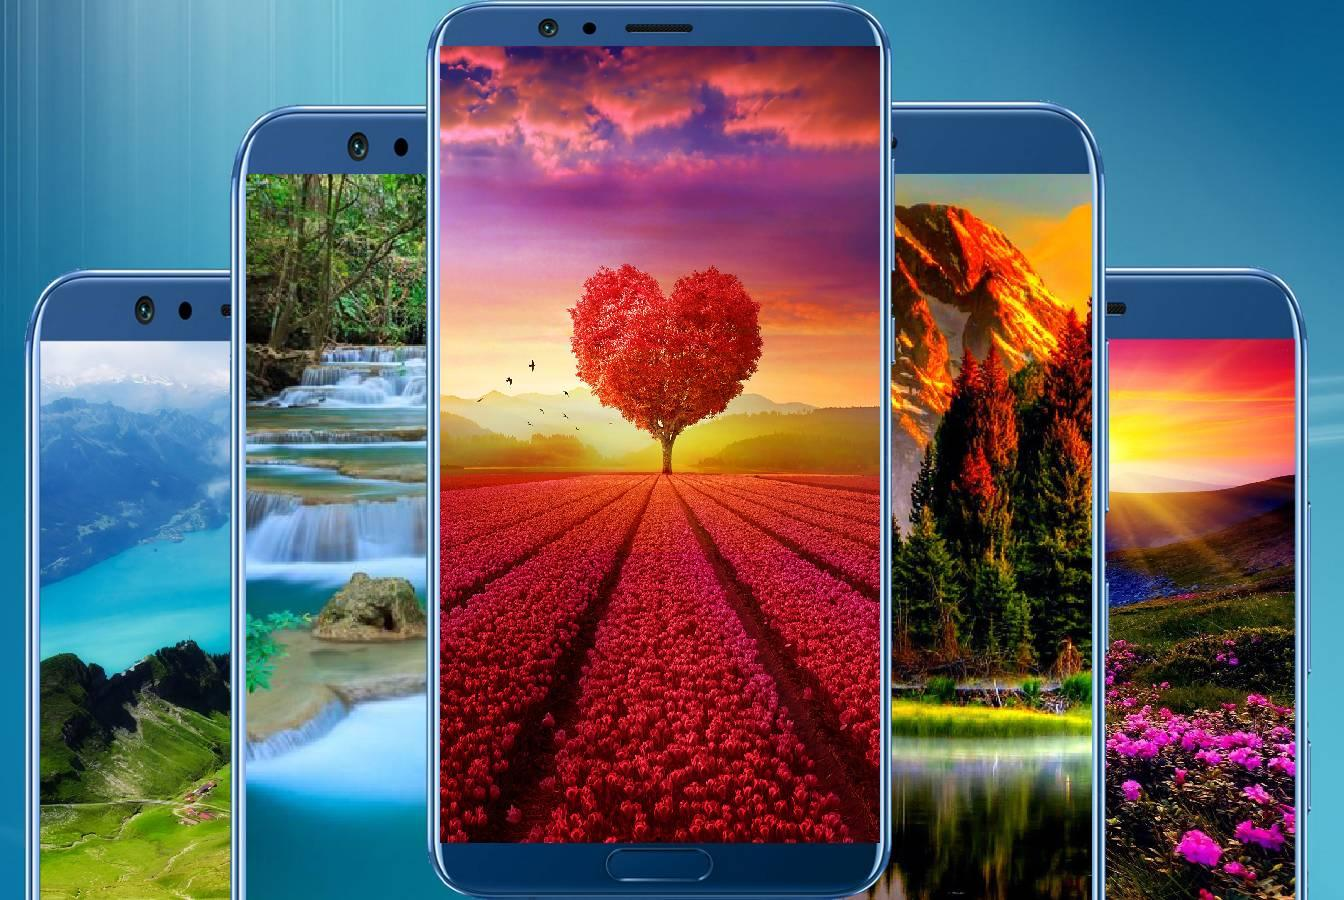 Scenery Wallpaper 4K APK 1.1 Download for Android ...